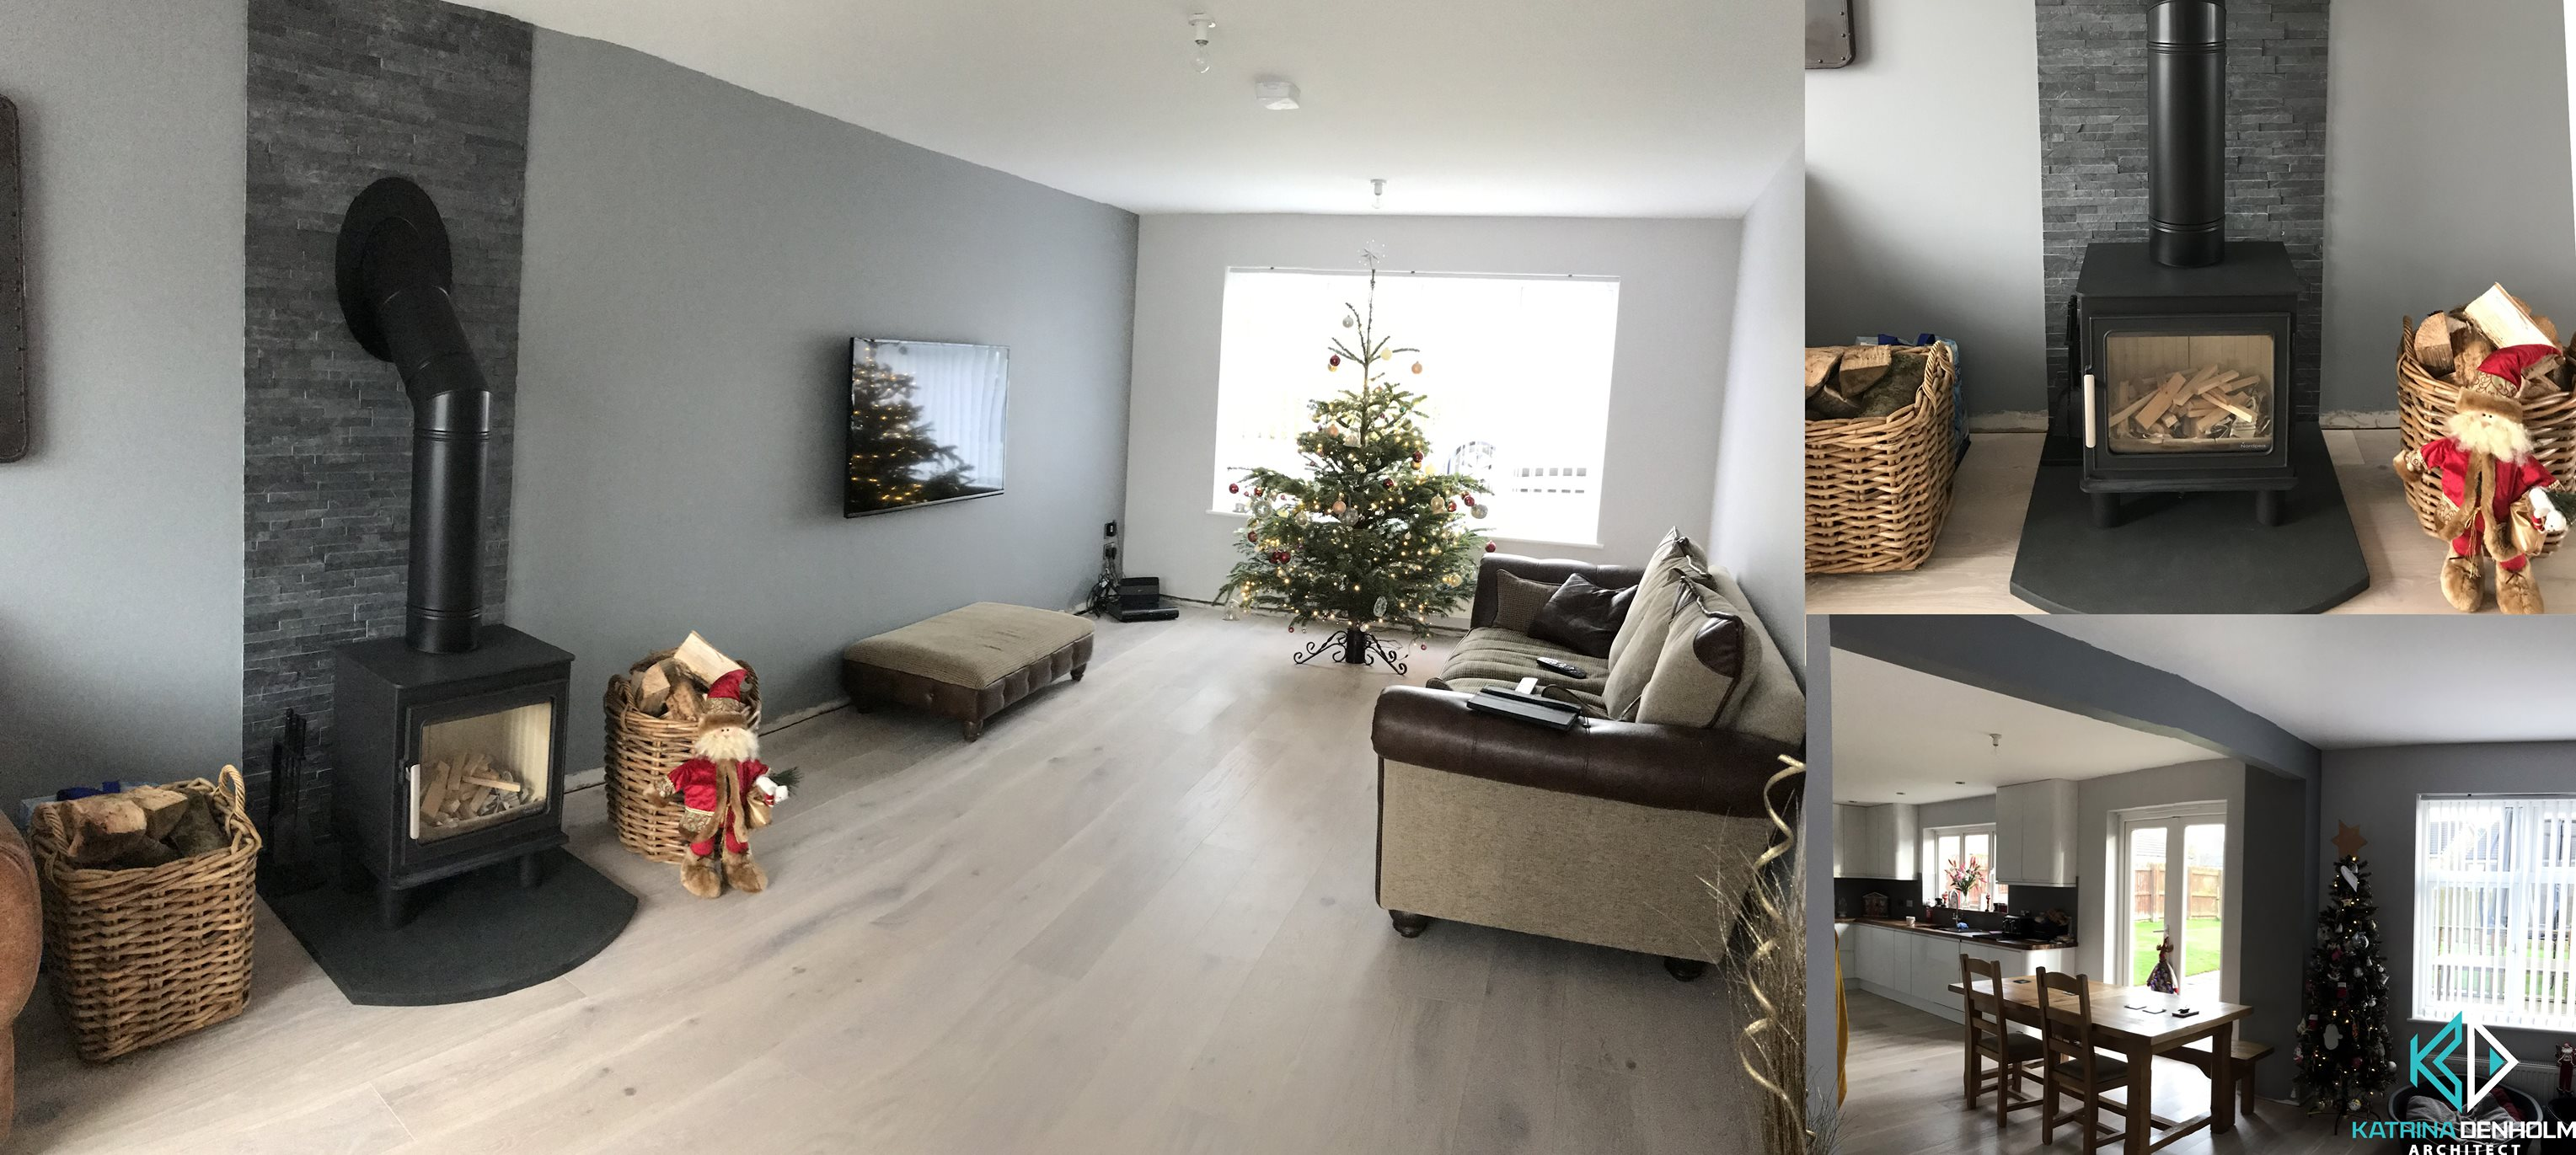 New family space